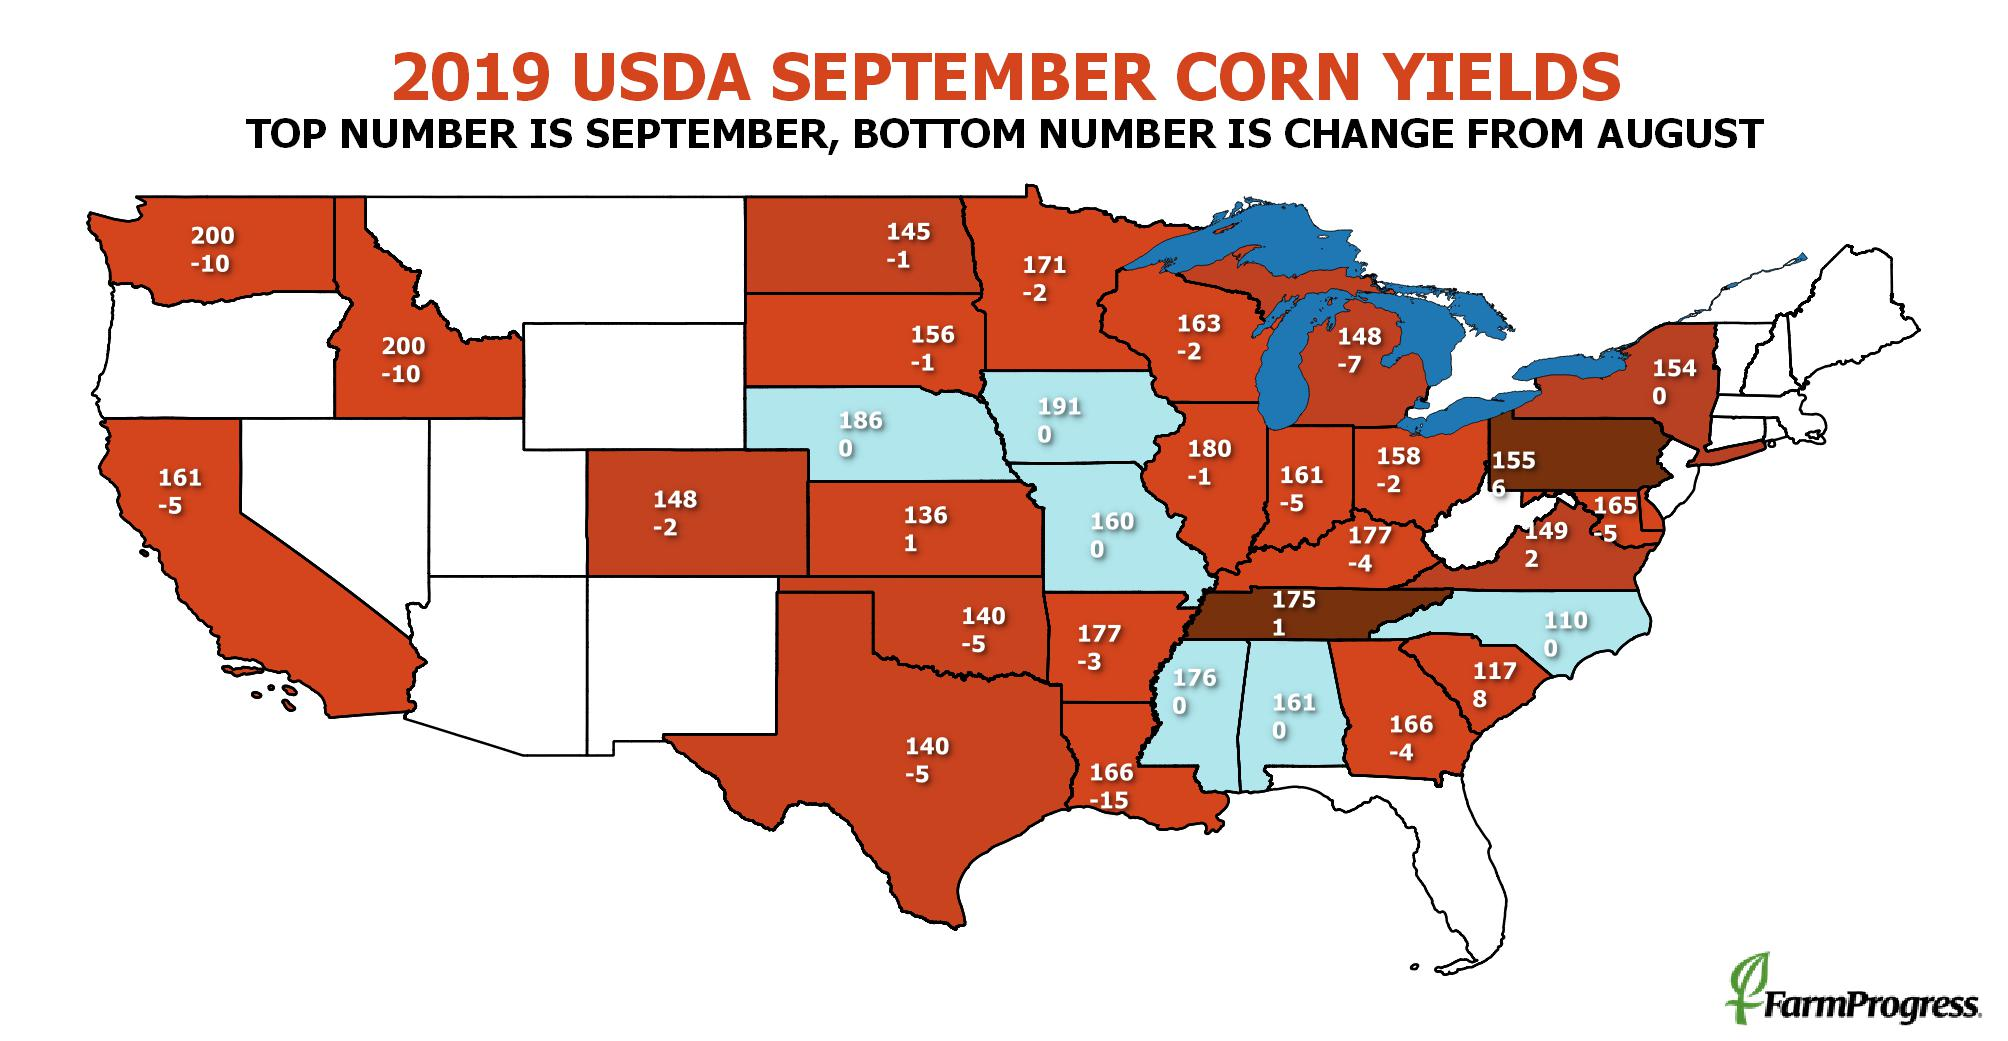 Corn Production Yields091219.jpeg